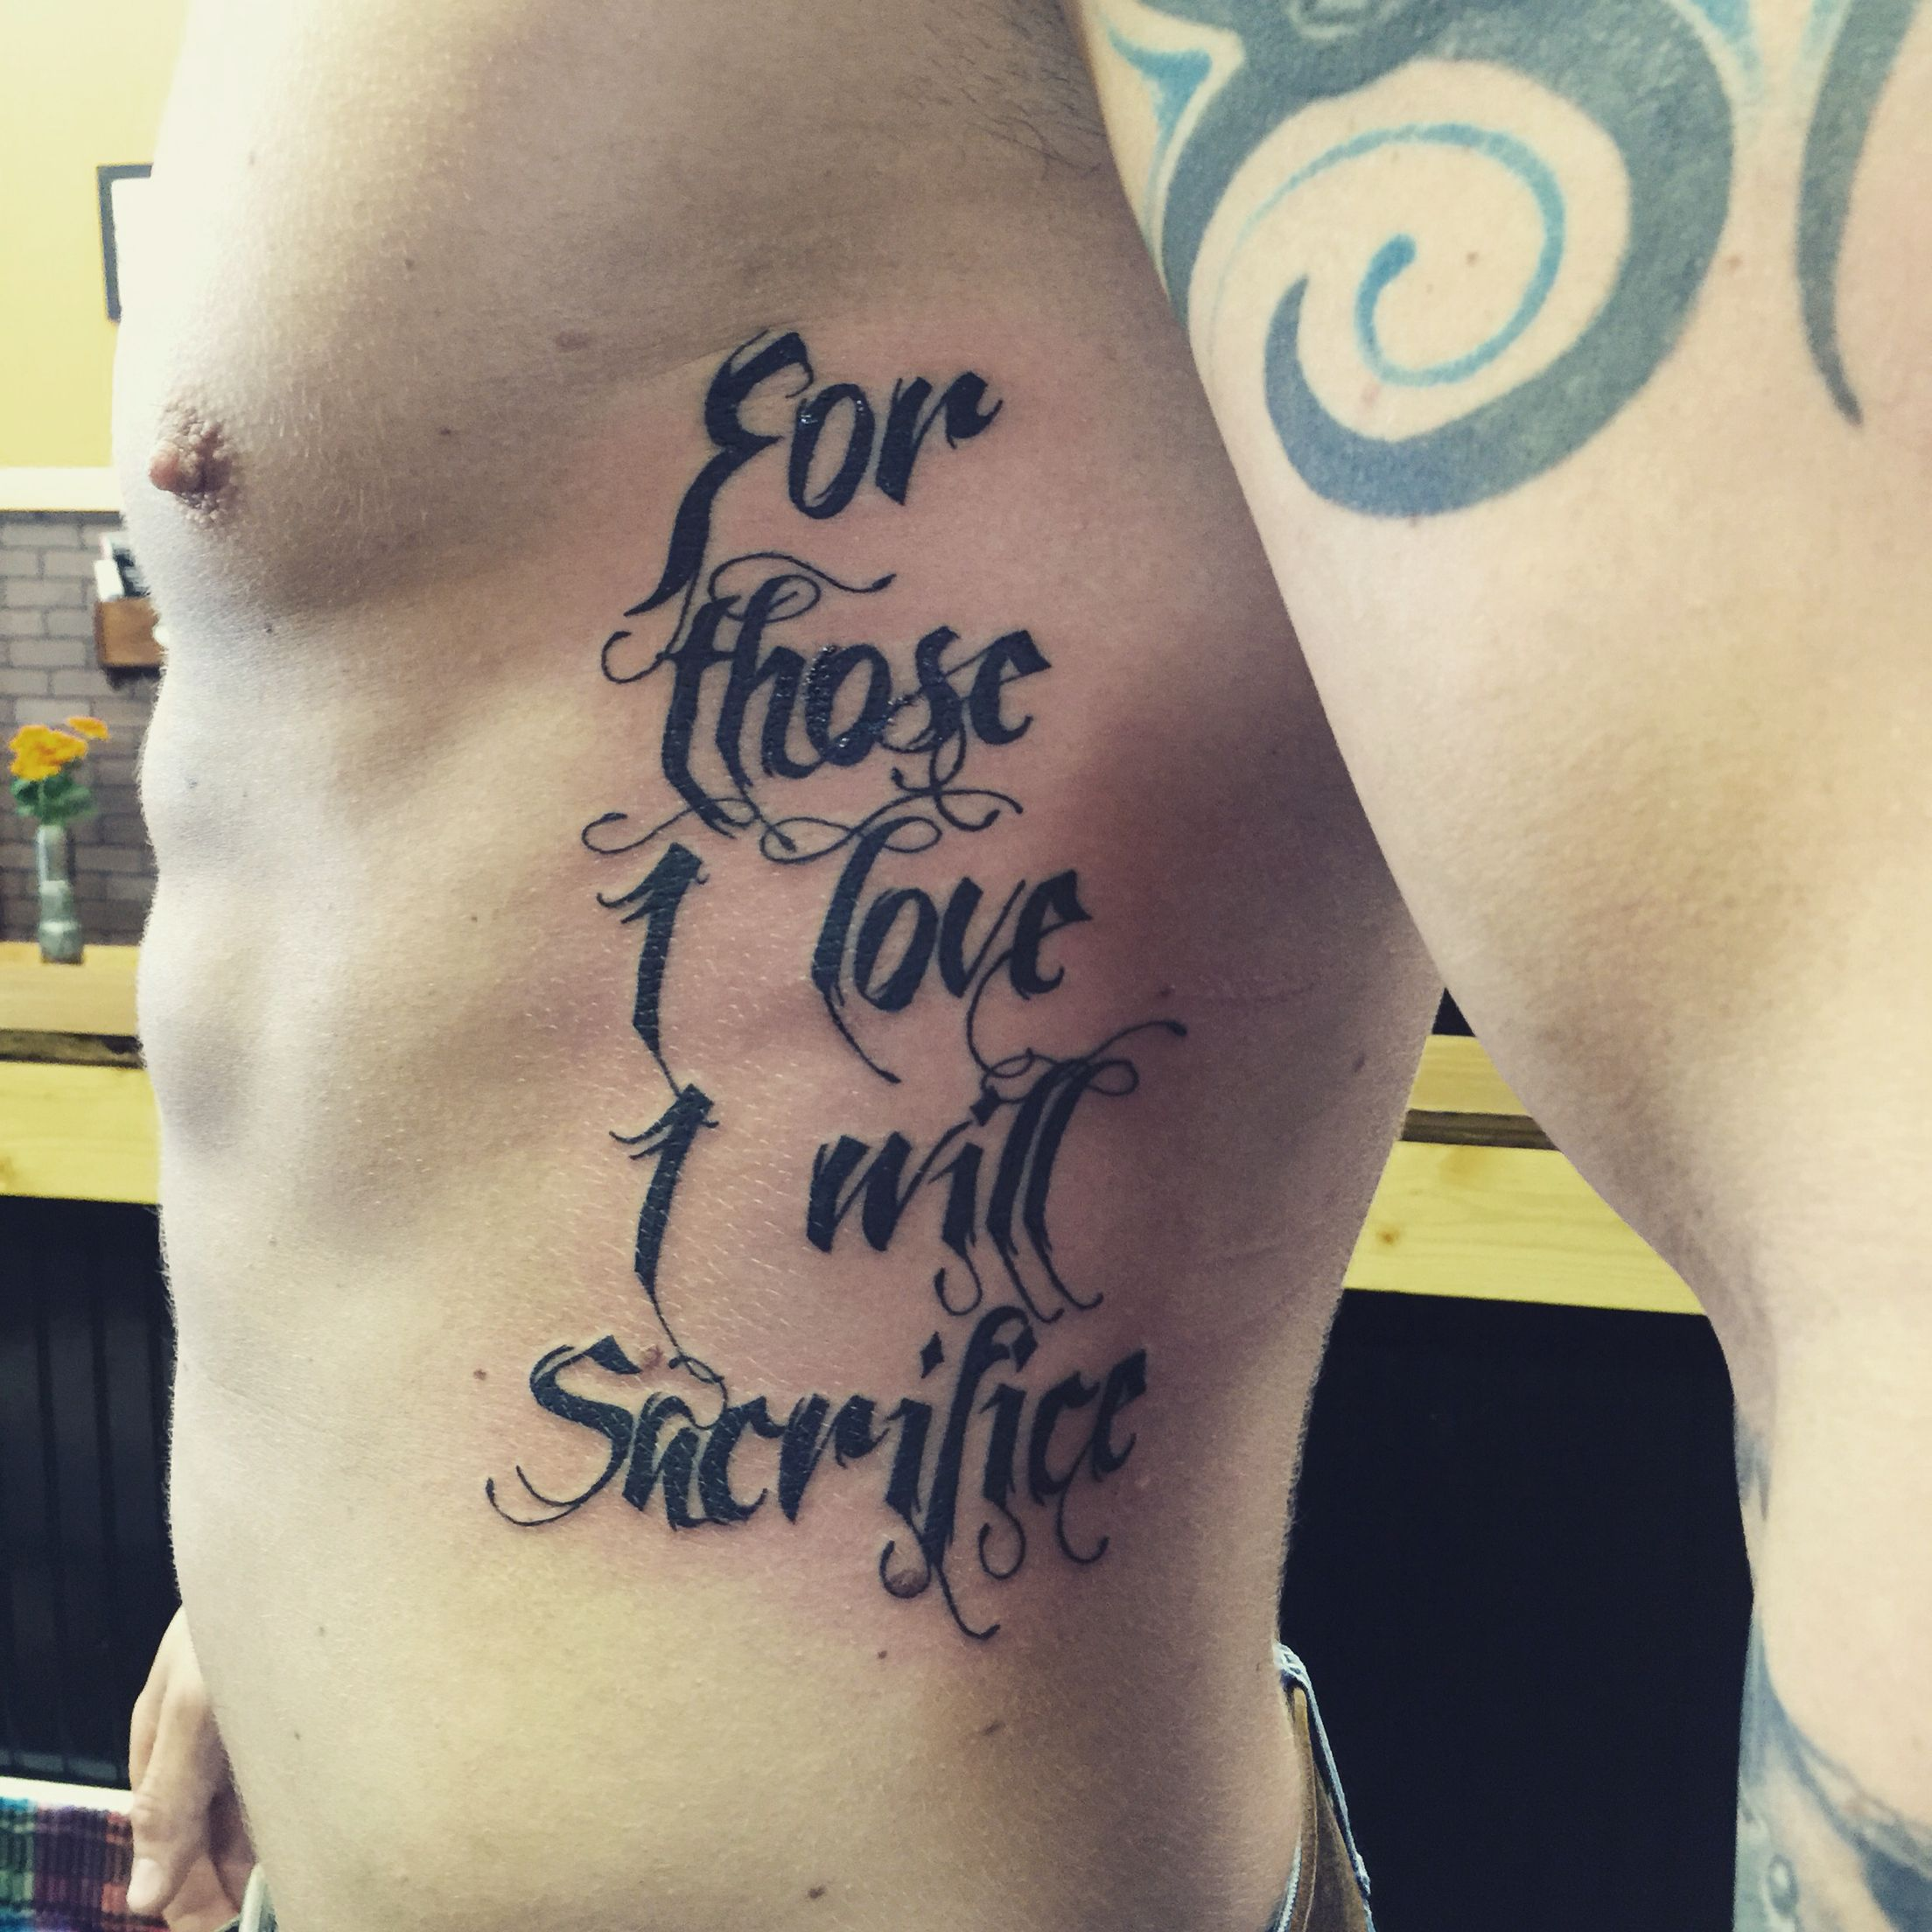 Badass Tattoo Quotes For Guys: For Those I Love I Will Sacrifice Tattoo